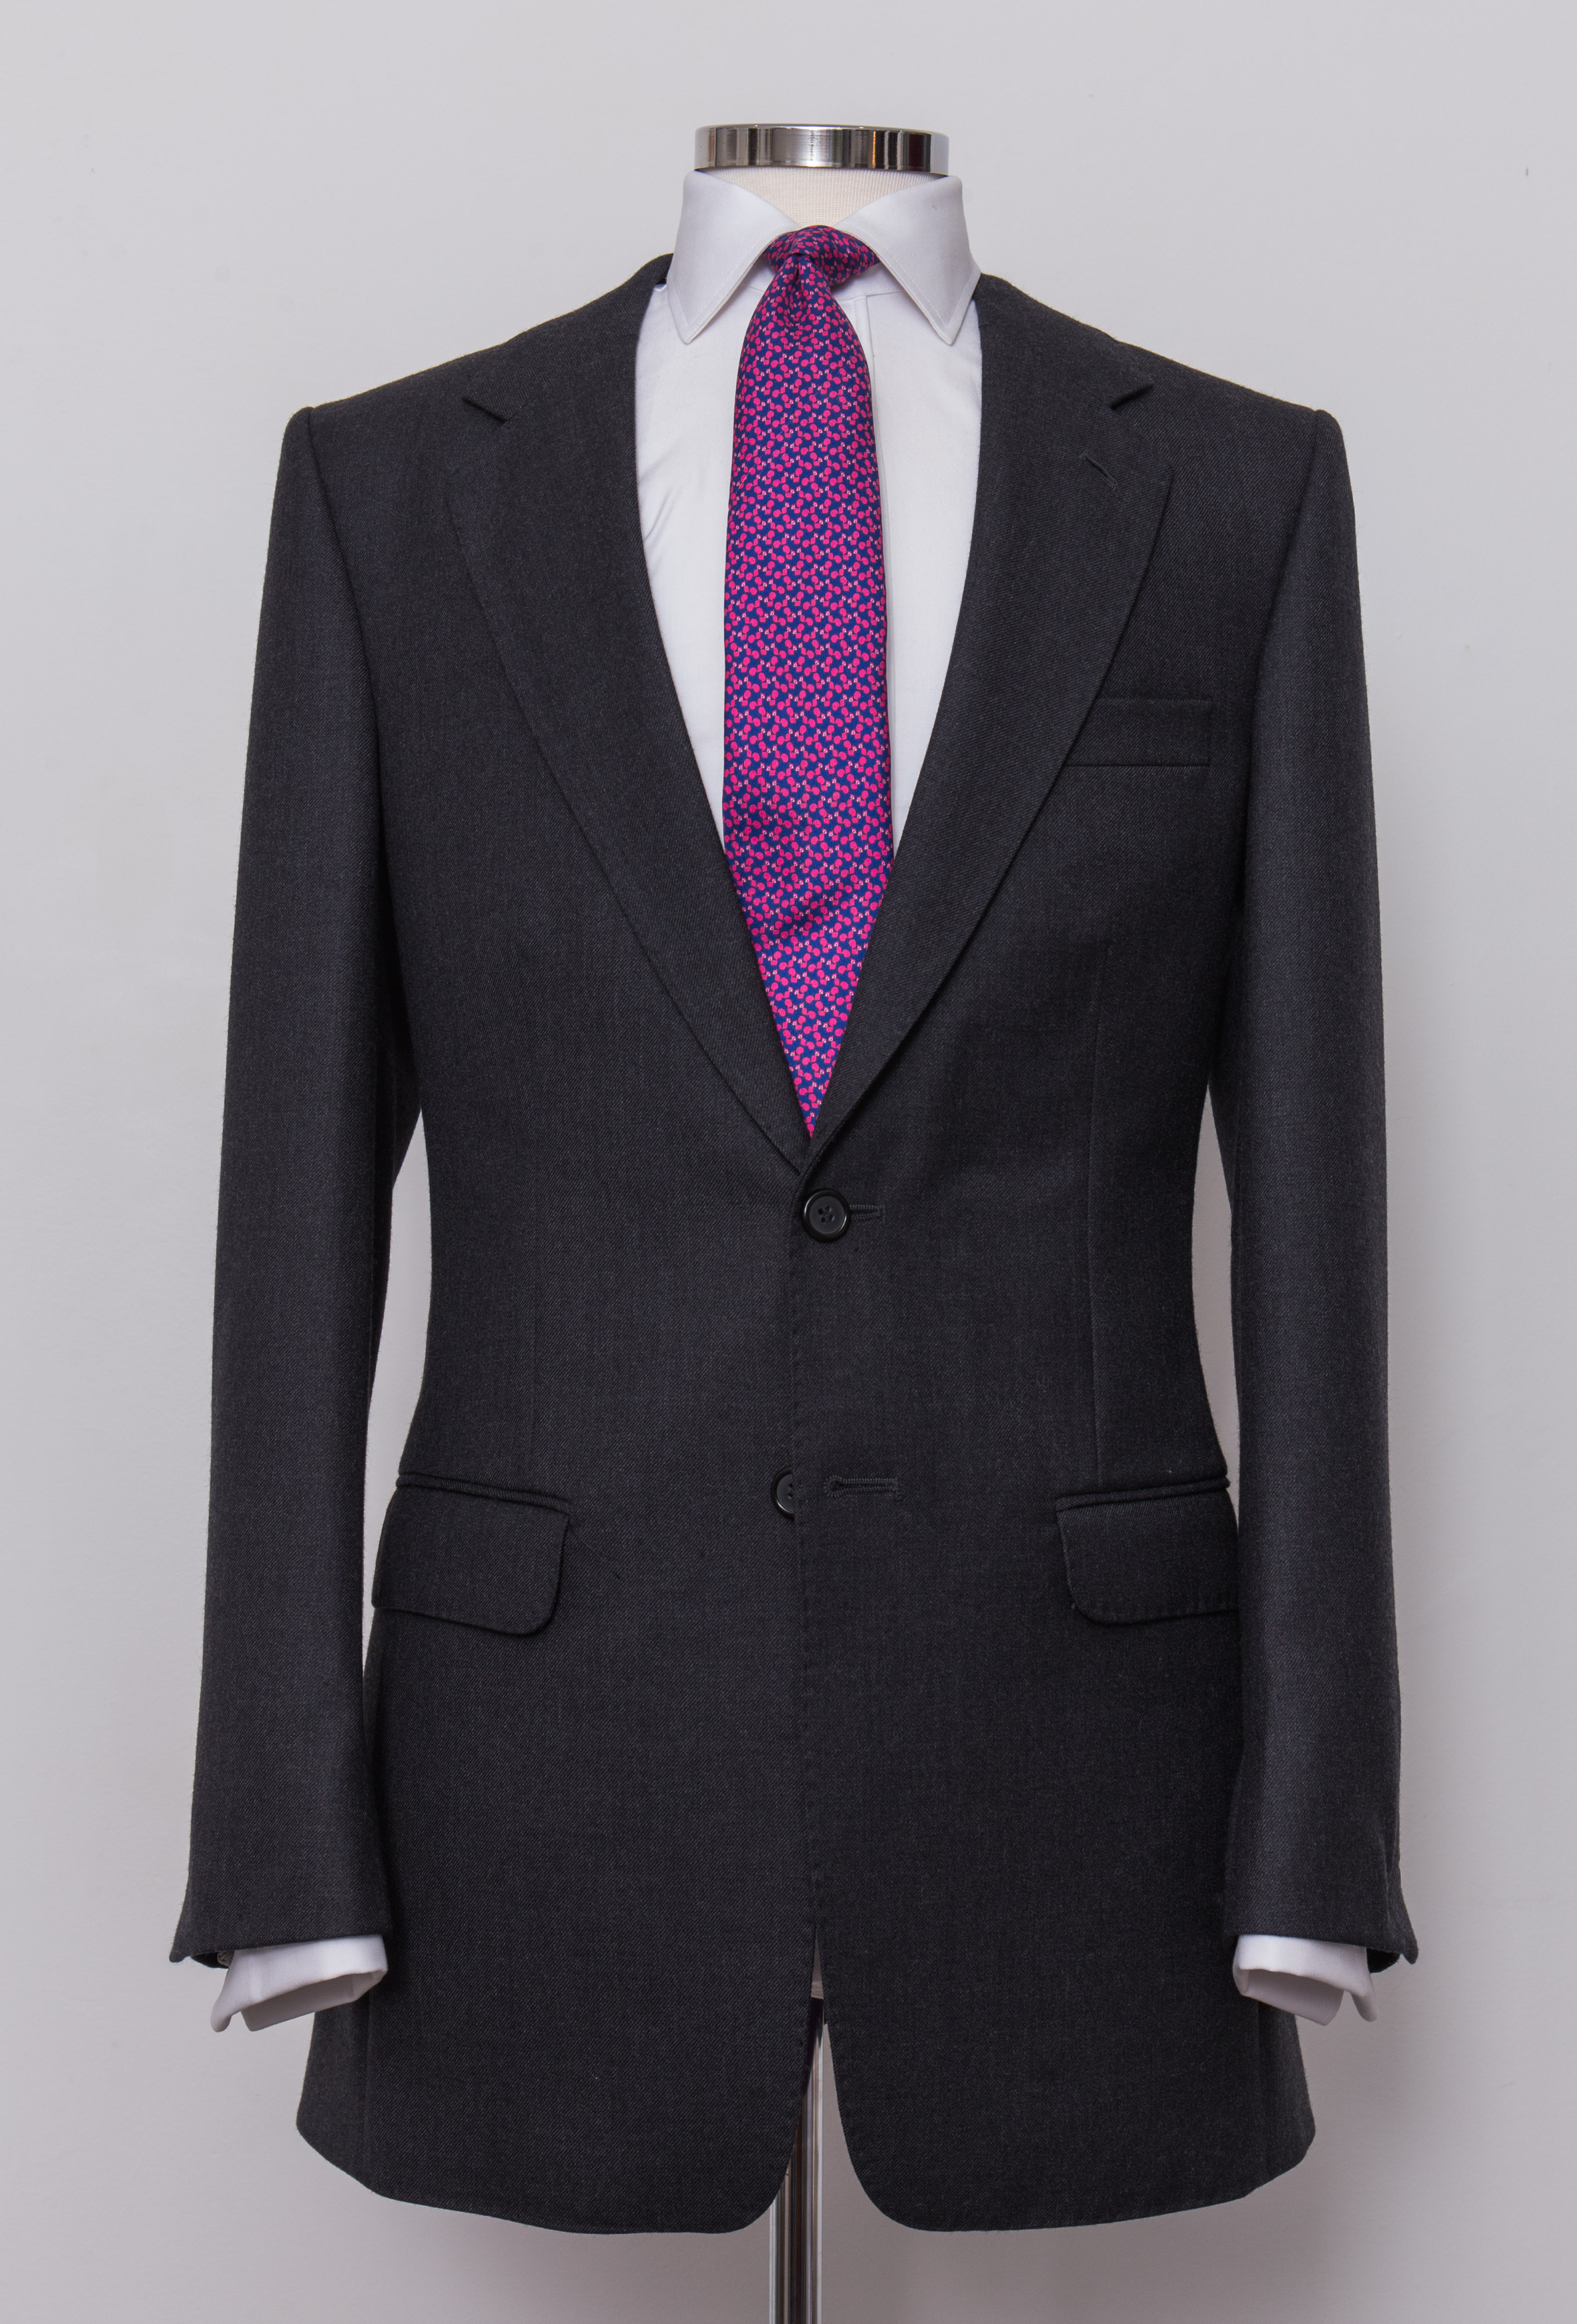 Bespoke Grey Charcoal Suit Tailoring